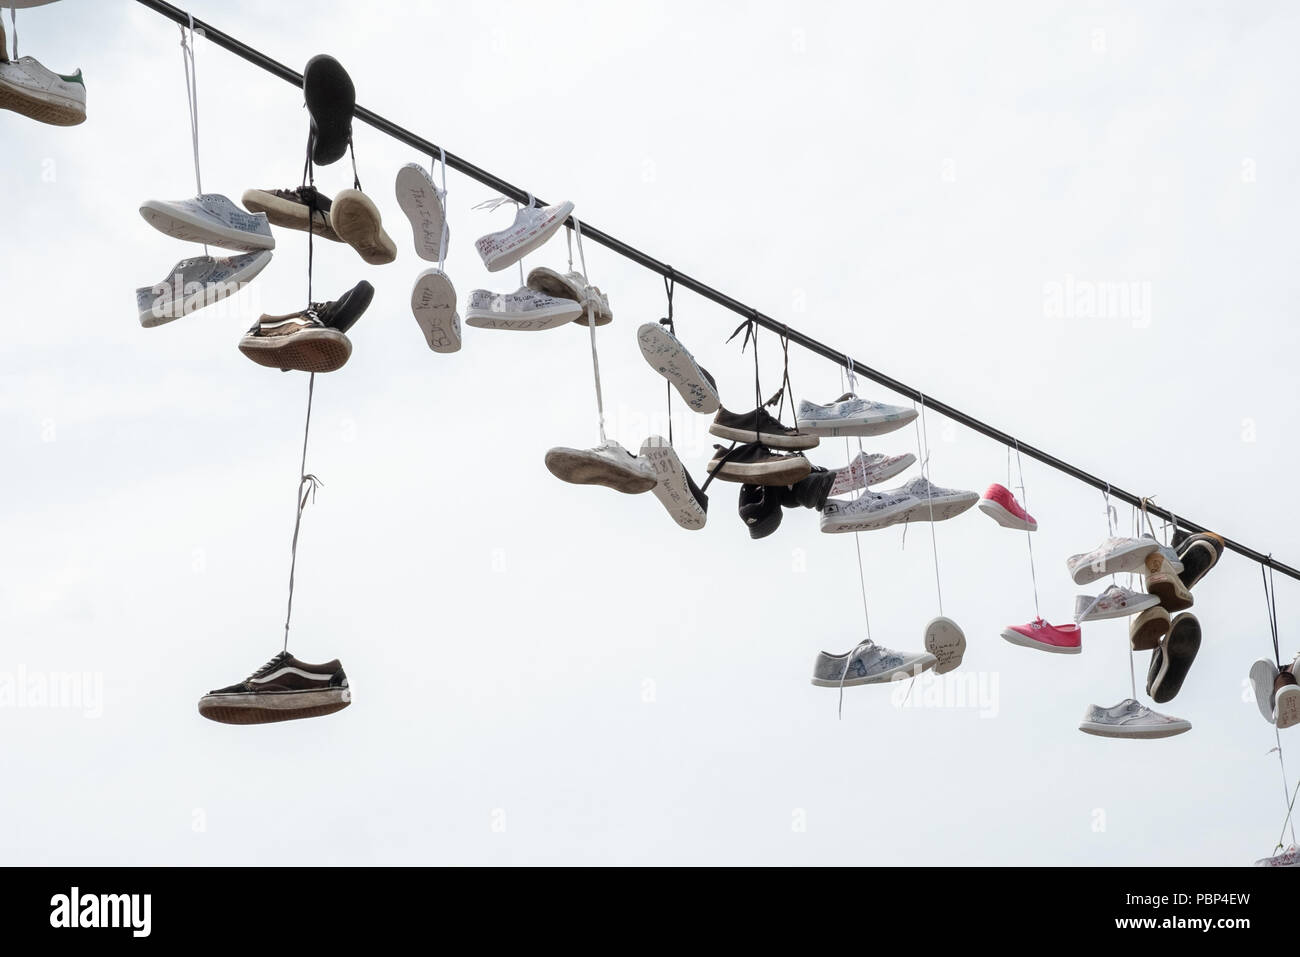 Line of pairs of shoes hanging on a line adjacent to the metronome in Prague - Stock Image